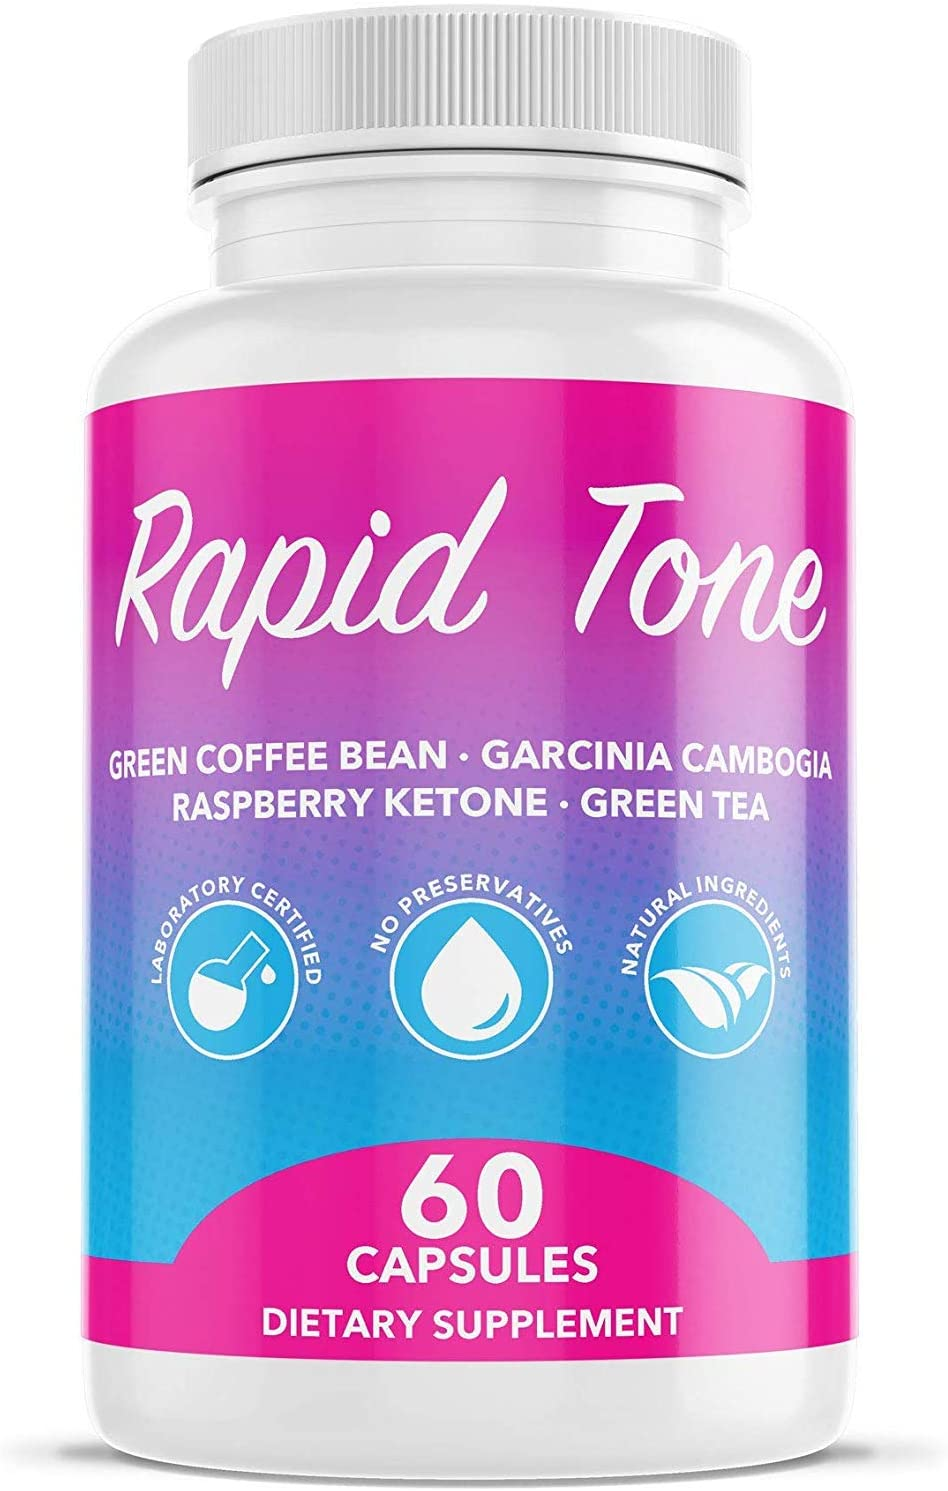 Rapid Tone Weight Loss Pills Supplement – Burn Fat Quicker – Carb Blocker, Appetite Suppressant, Fat Burner, Serotonin Increase – Natural Thermogenic Extreme Diet Fast WeightLoss for Women Men